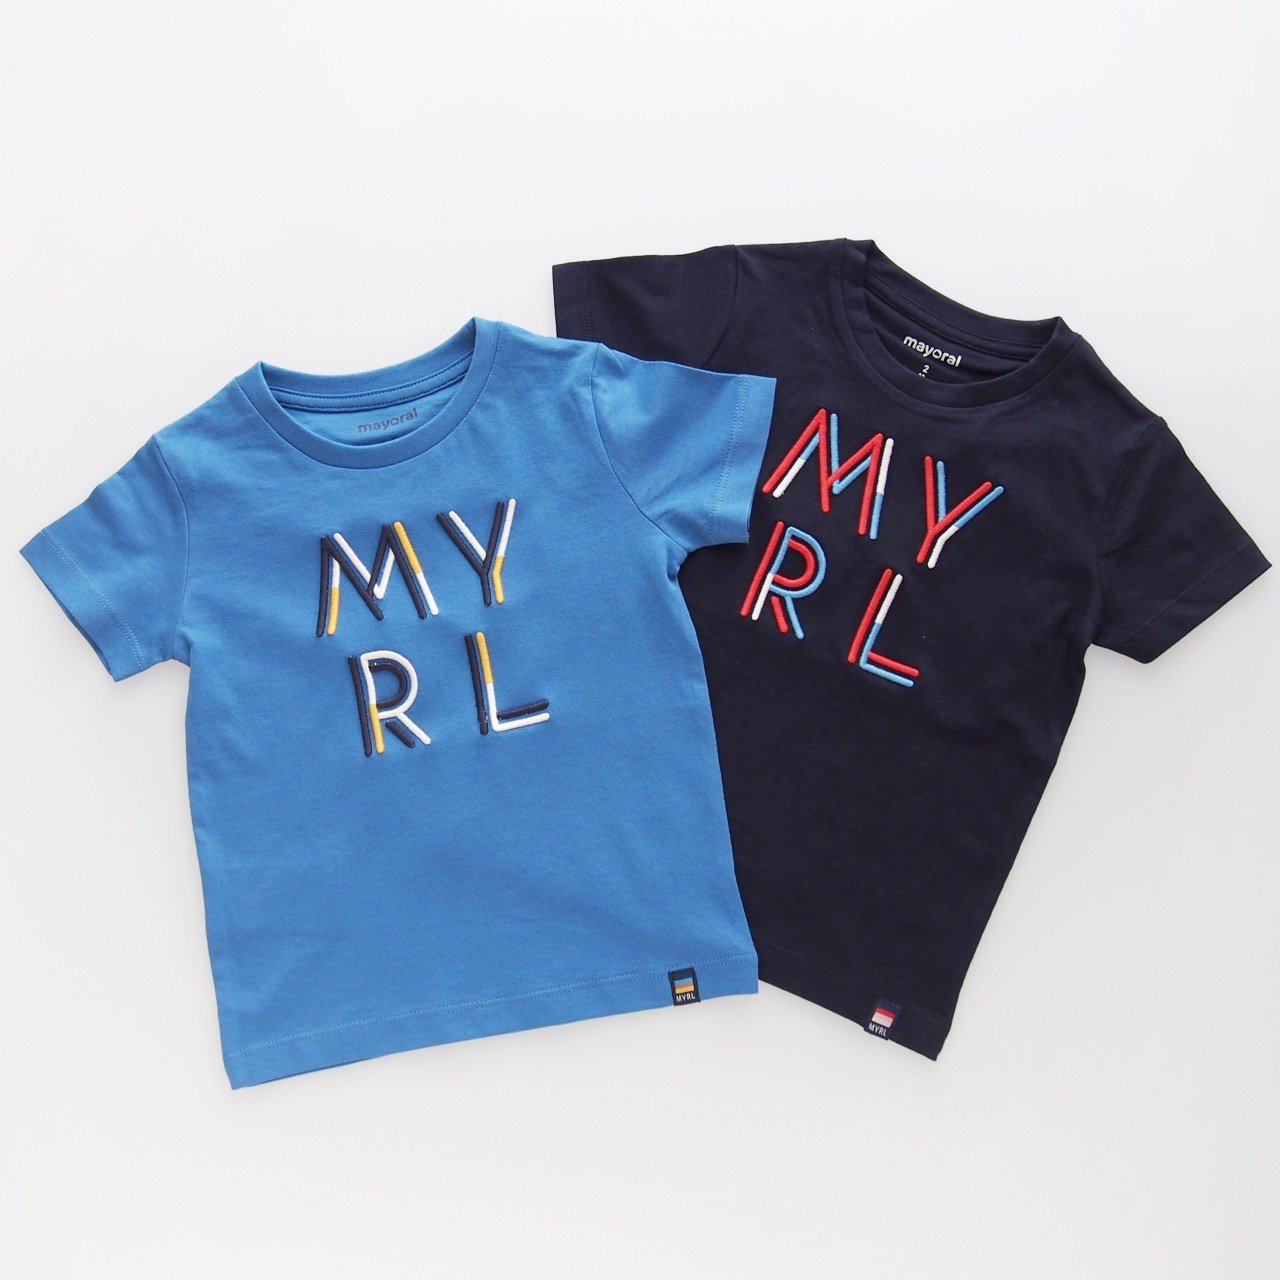 <img class='new_mark_img1' src='https://img.shop-pro.jp/img/new/icons1.gif' style='border:none;display:inline;margin:0px;padding:0px;width:auto;' />Mayoral - Emboss T-shirt (Navy/ Blue)